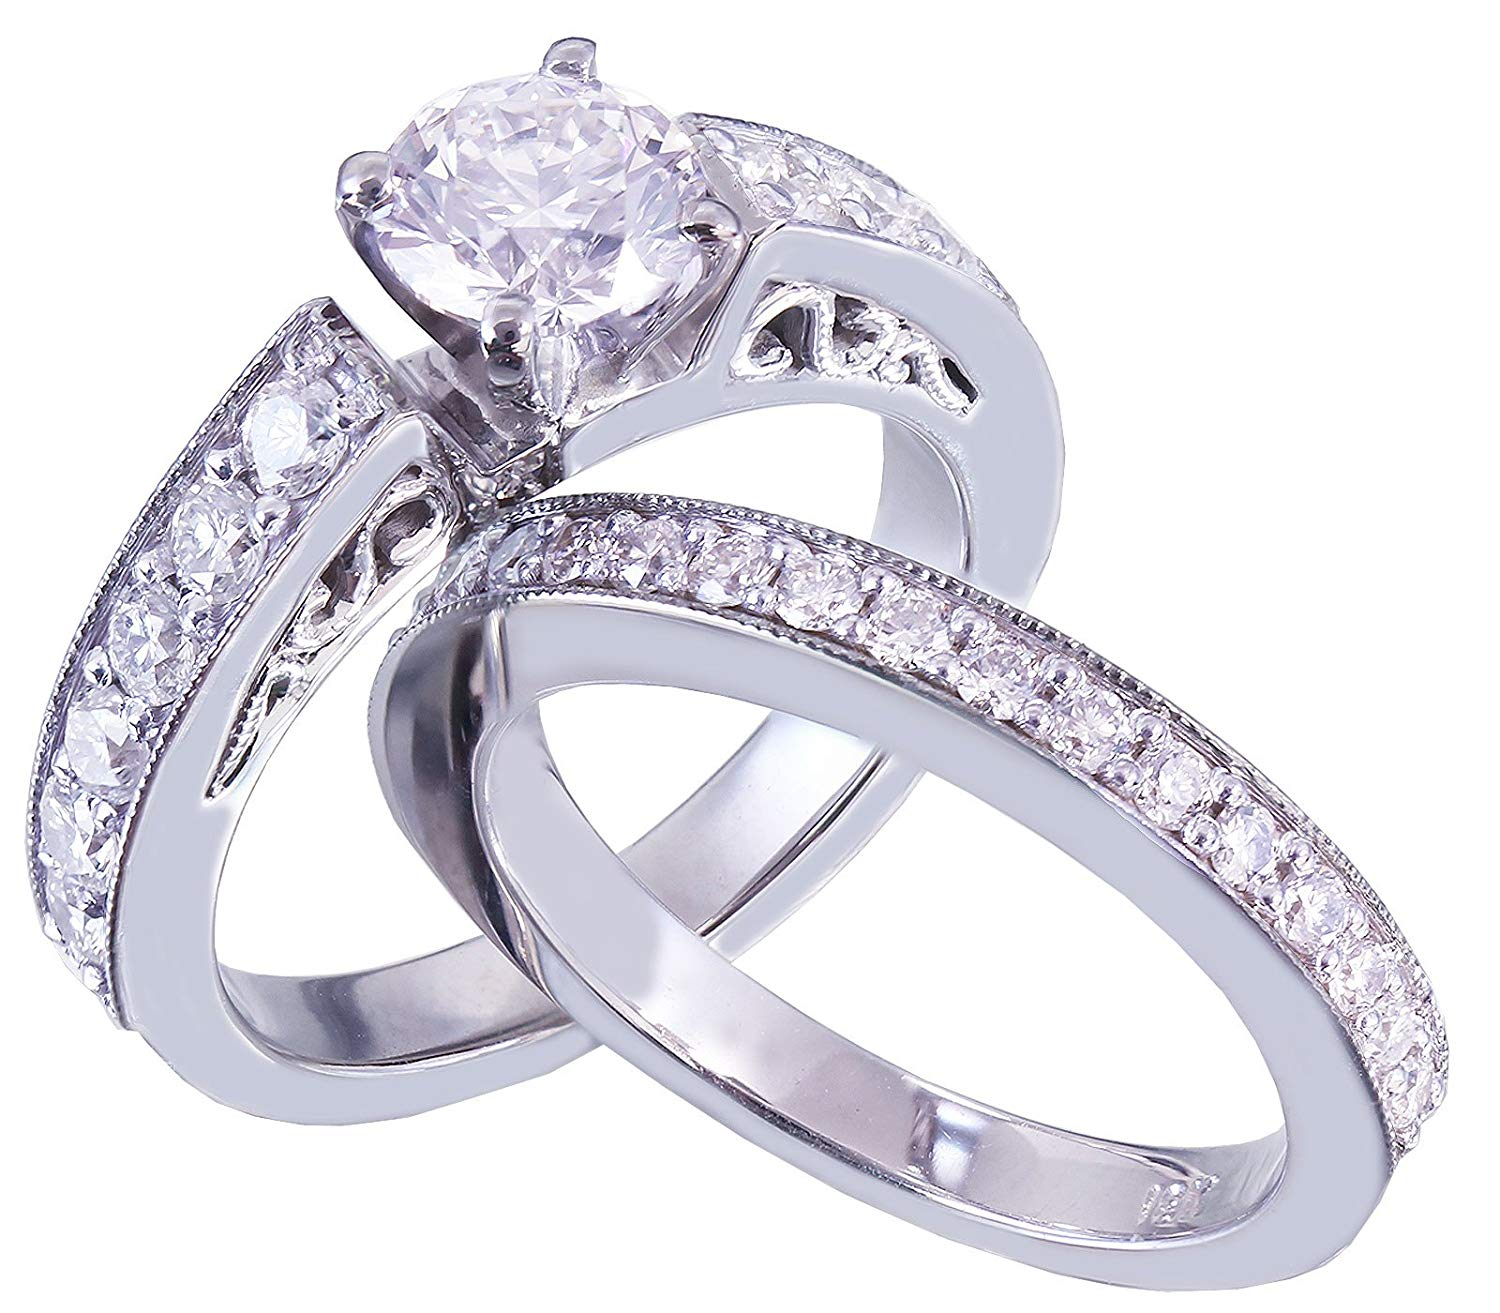 14k White Gold Round Cut Diamond Engagement Ring And Band Art Deco Antique Style 1.35ctw